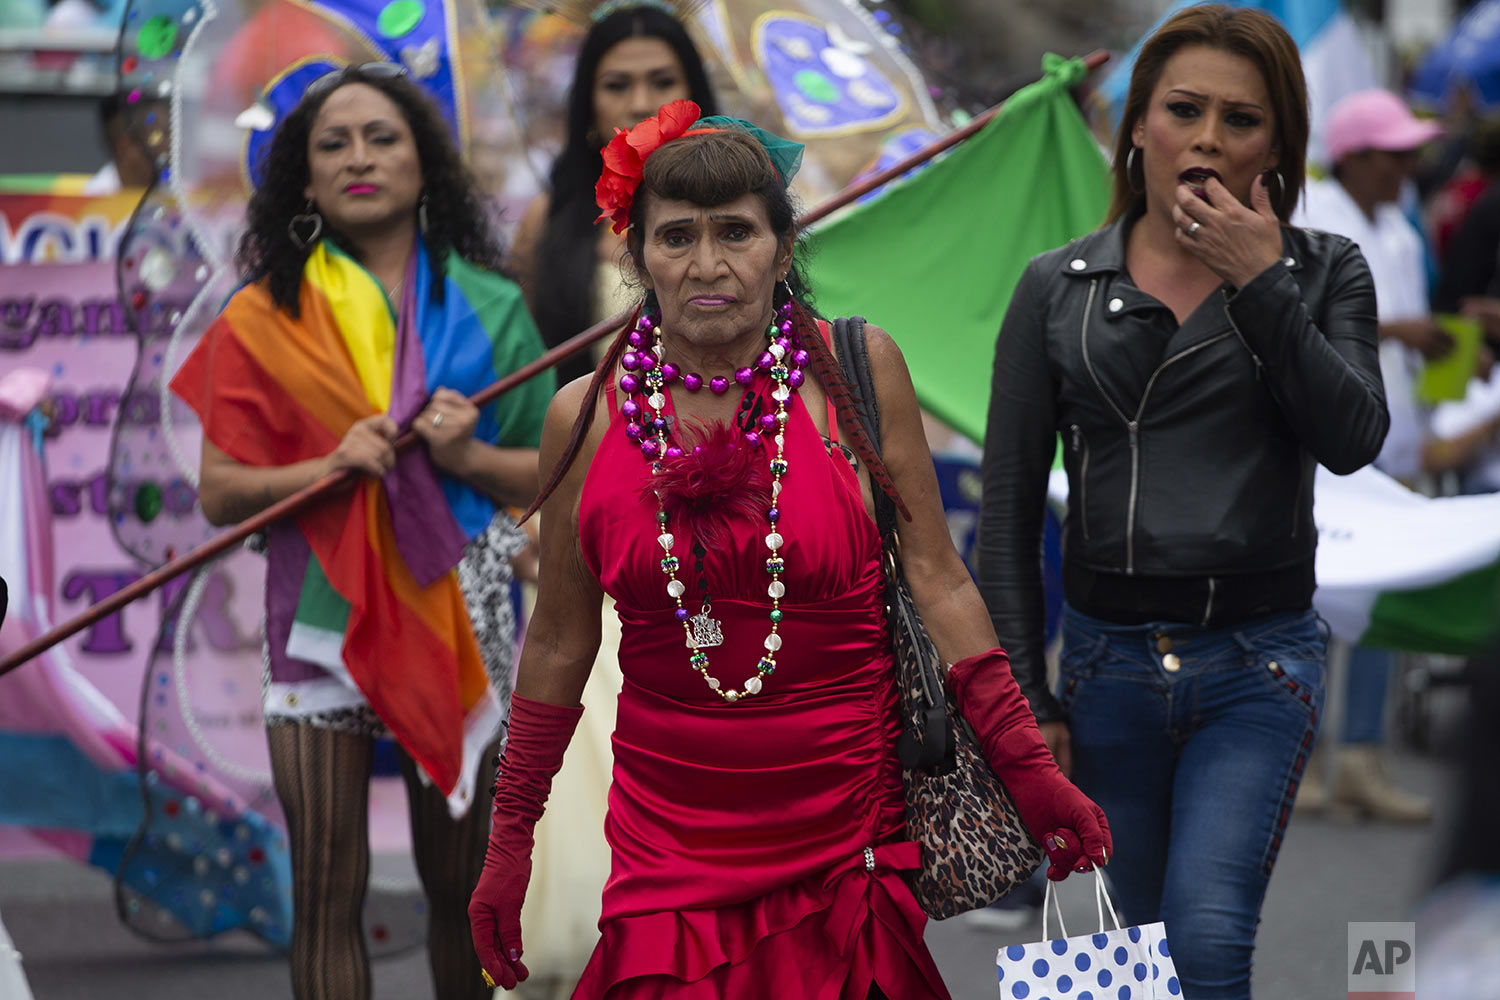 Revelers take part in the annual Gay Pride parade in Guatemala City's historical center, July 20, 2019. (AP Photo/Moises Castillo)